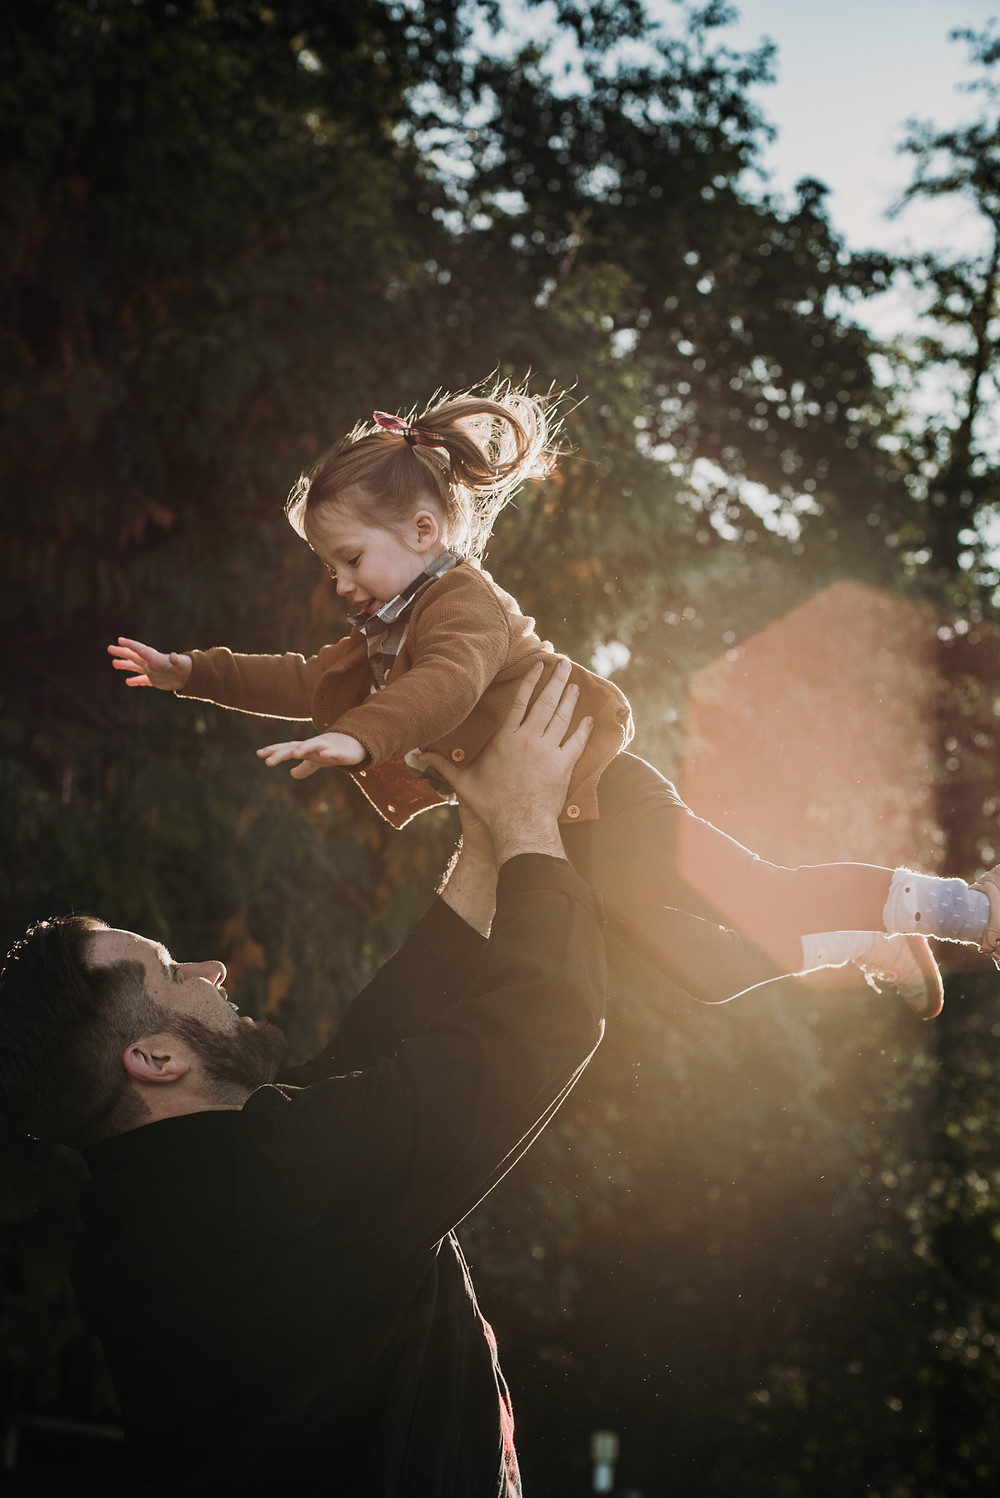 Dad playfully throwing daughter in the air at Tolmie State Park in Olympia, WA. Their family pictures were captured by Cherish Harper at Cherish Shanell Photography